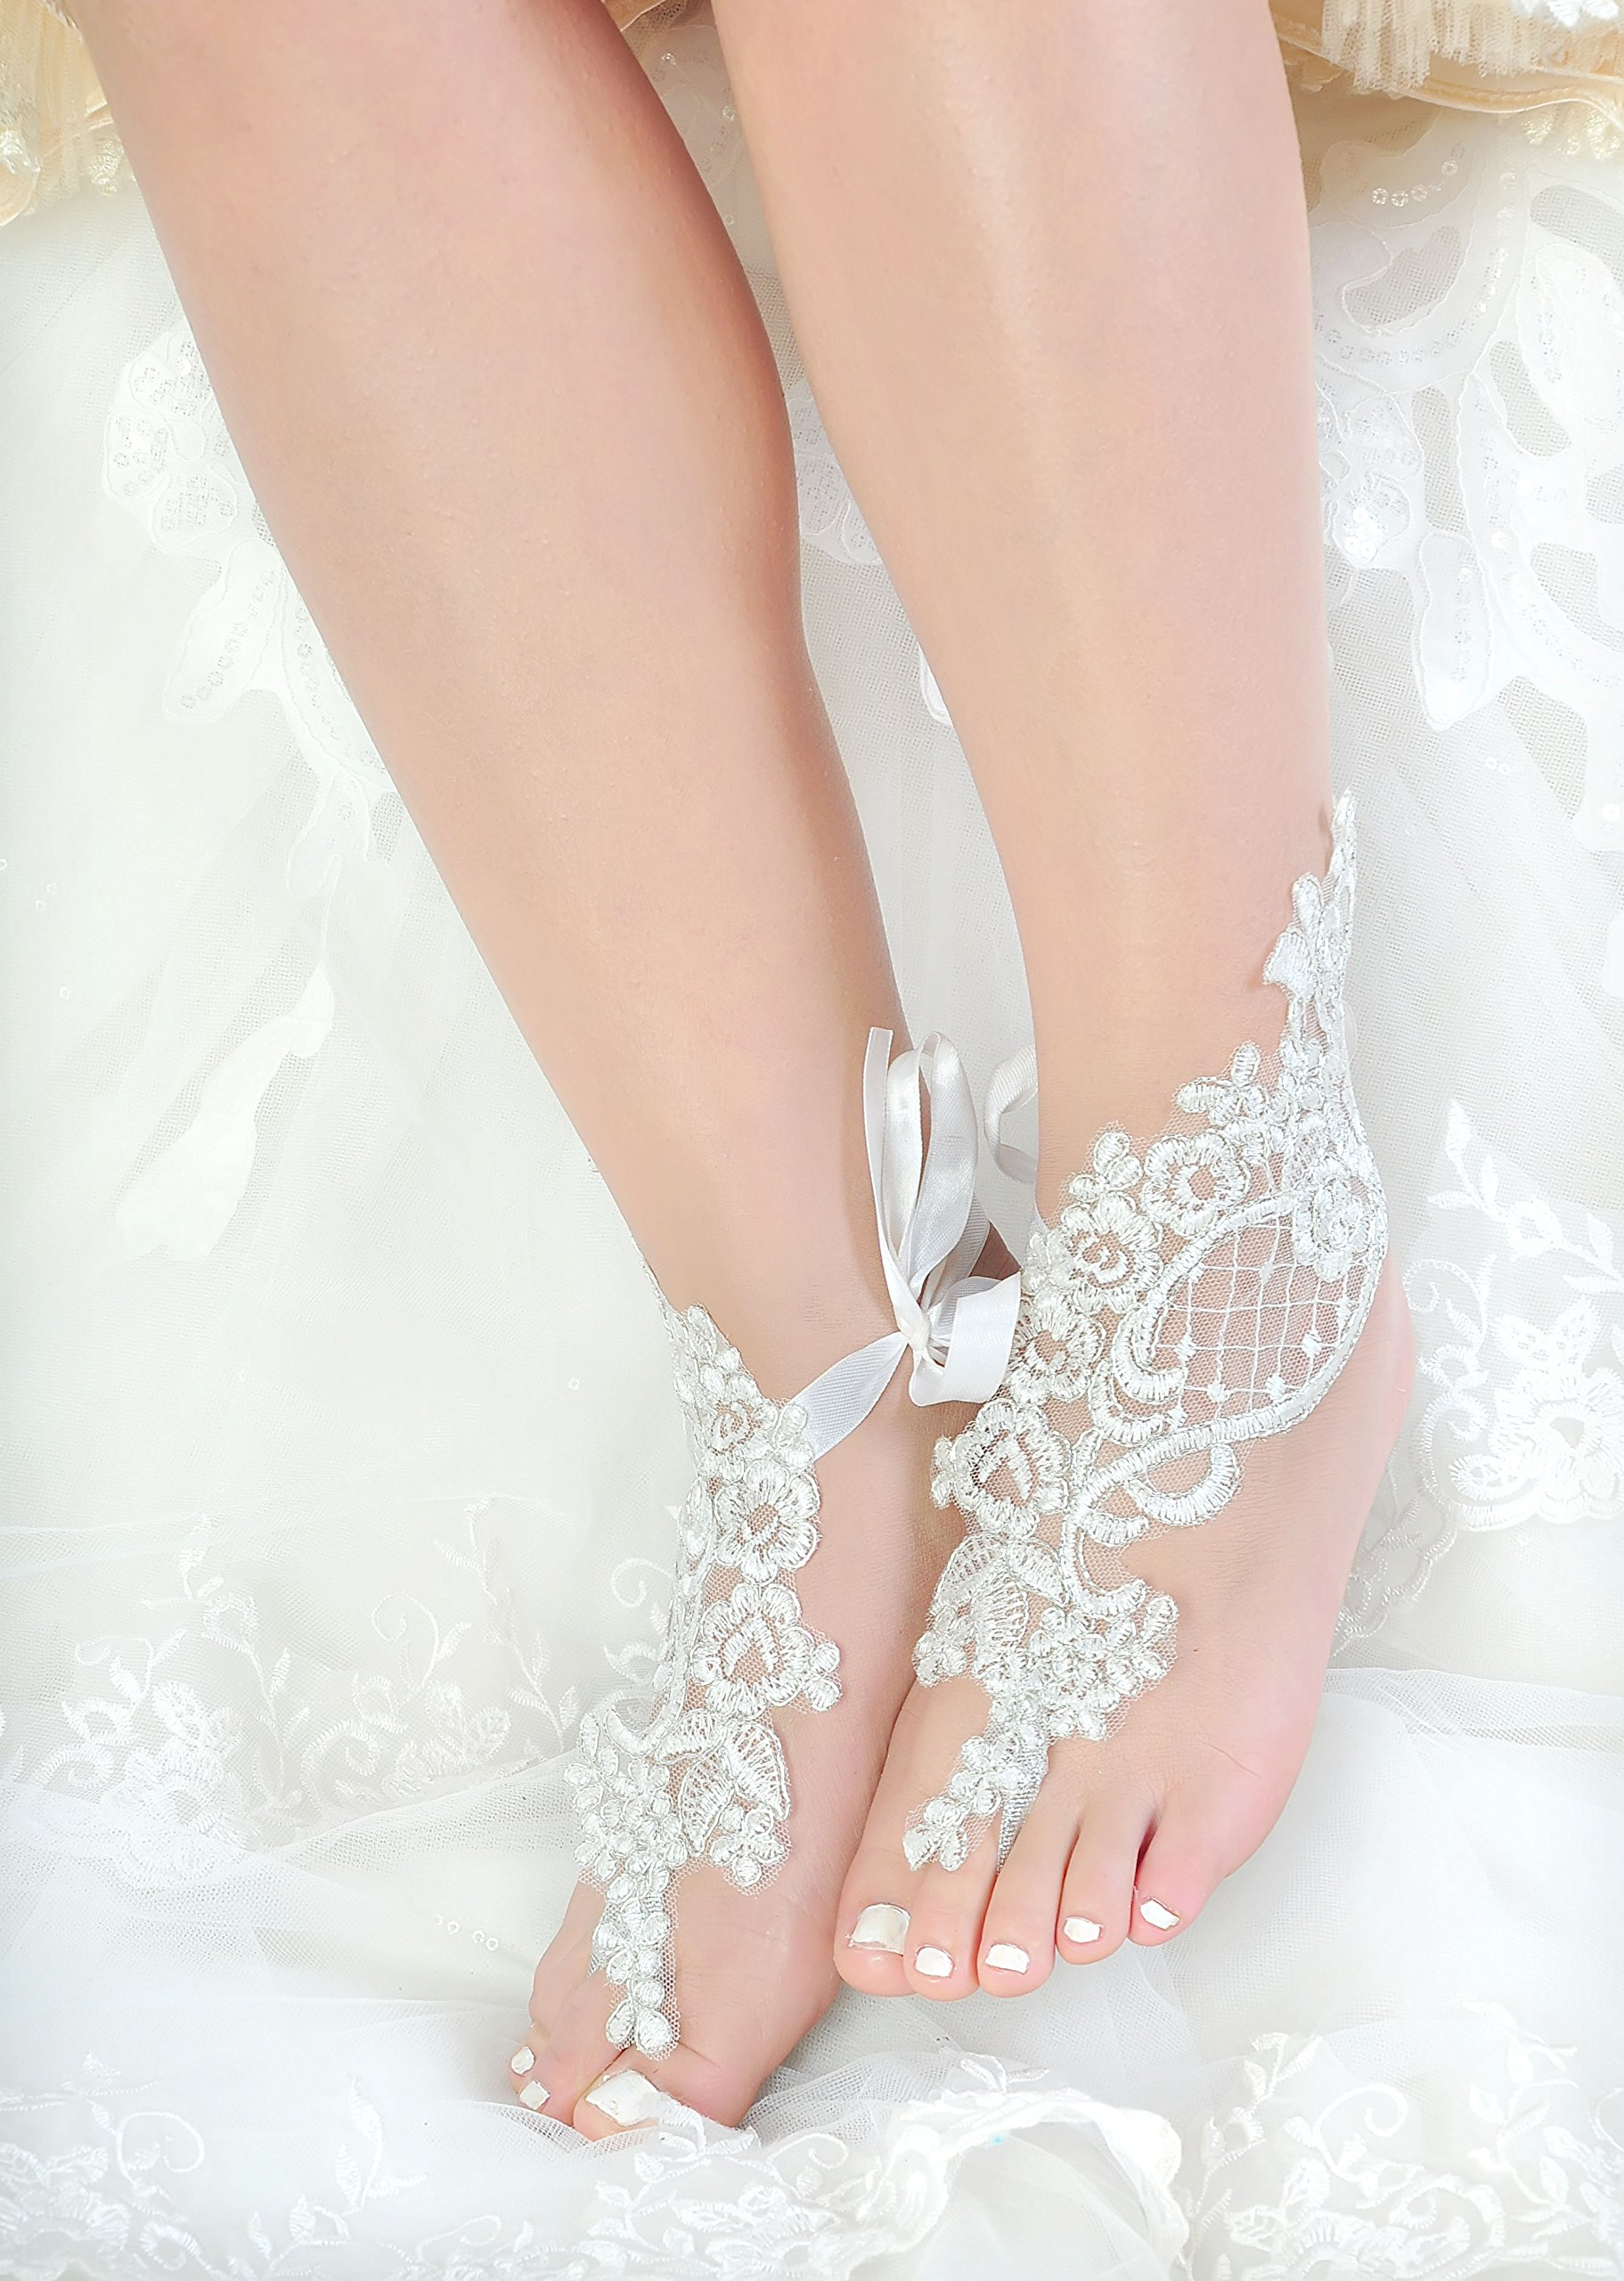 Handmade Lace Anklets,Destination Wedding Barefoot Sandals Prom Party Bangle,Bellydance Accessories-T1 by Fine Lady (Image #3)